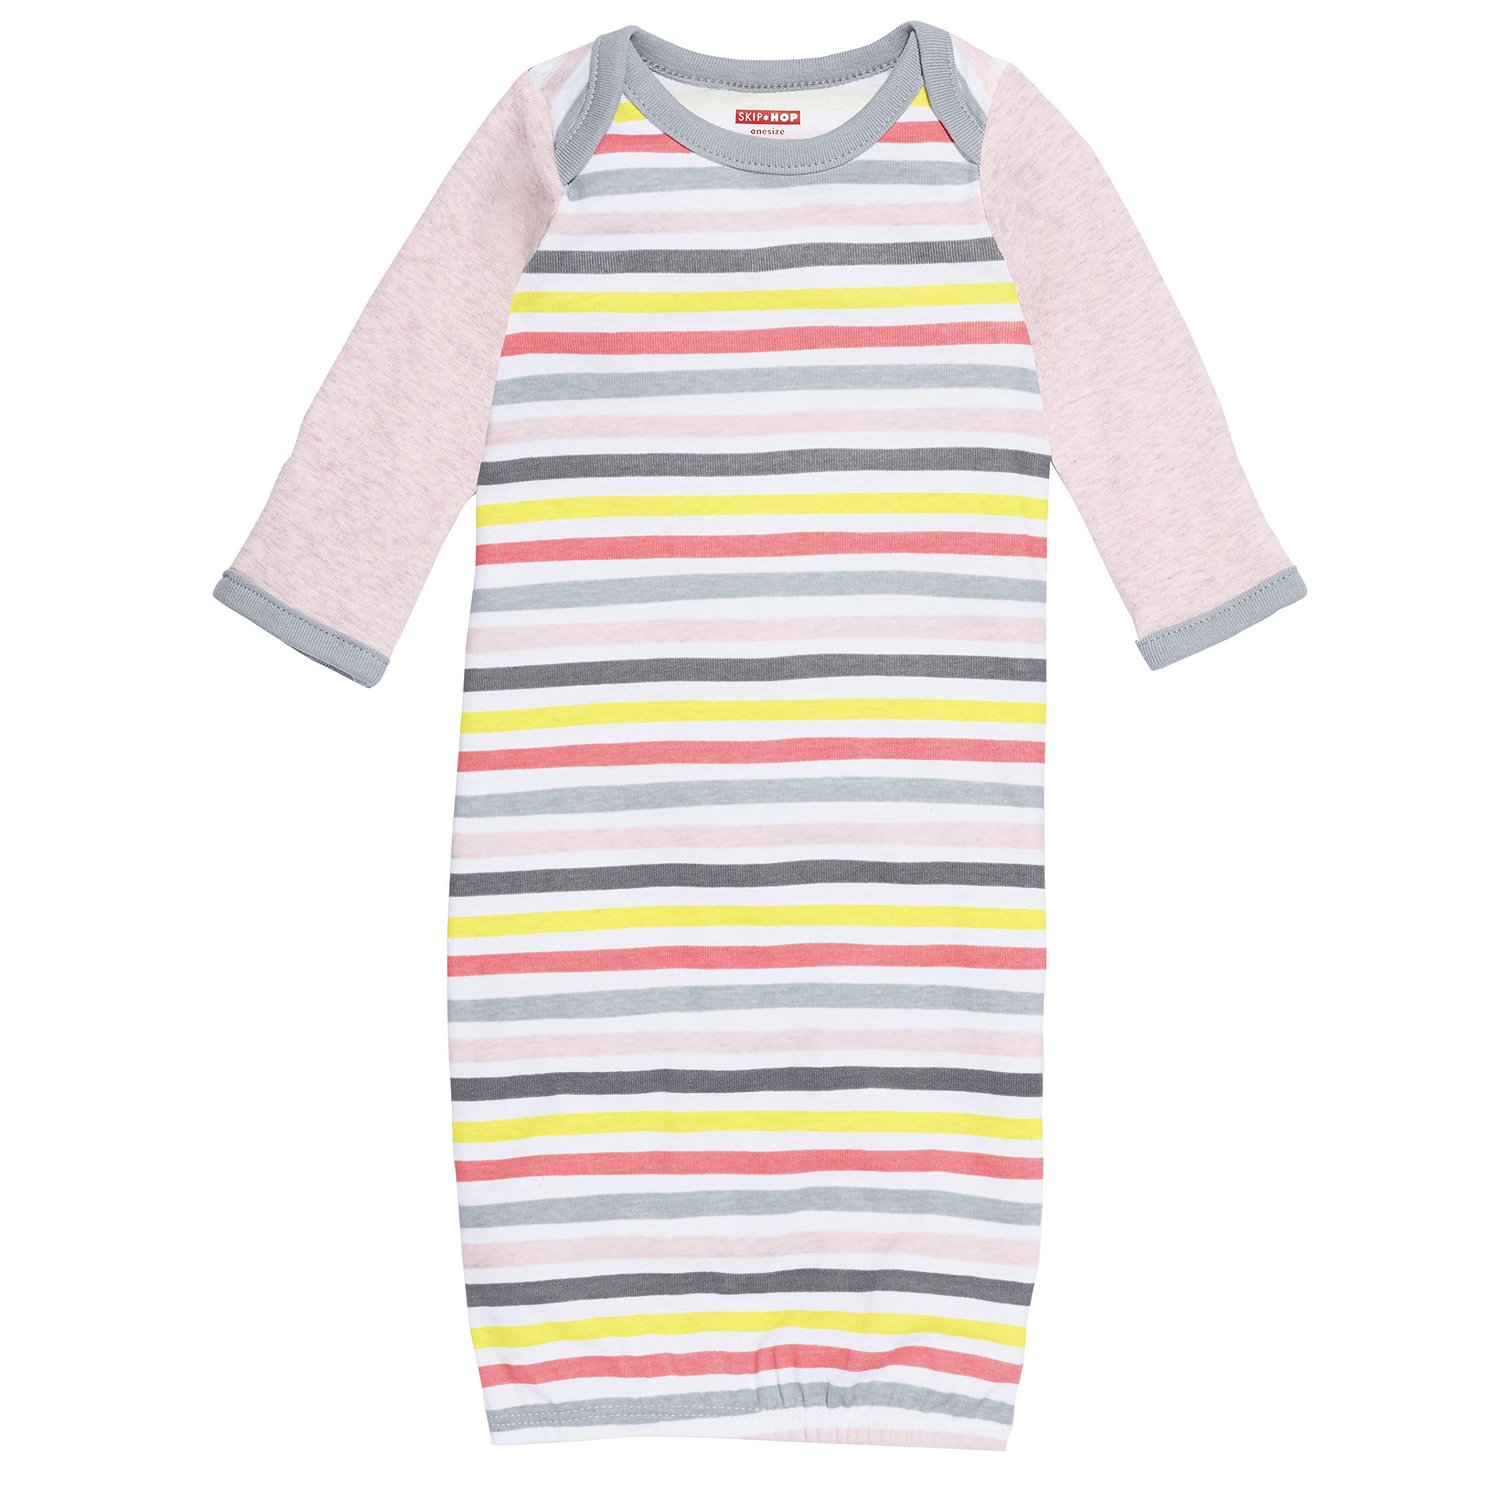 Cheap Baby Sleep Gown, find Baby Sleep Gown deals on line at Alibaba.com